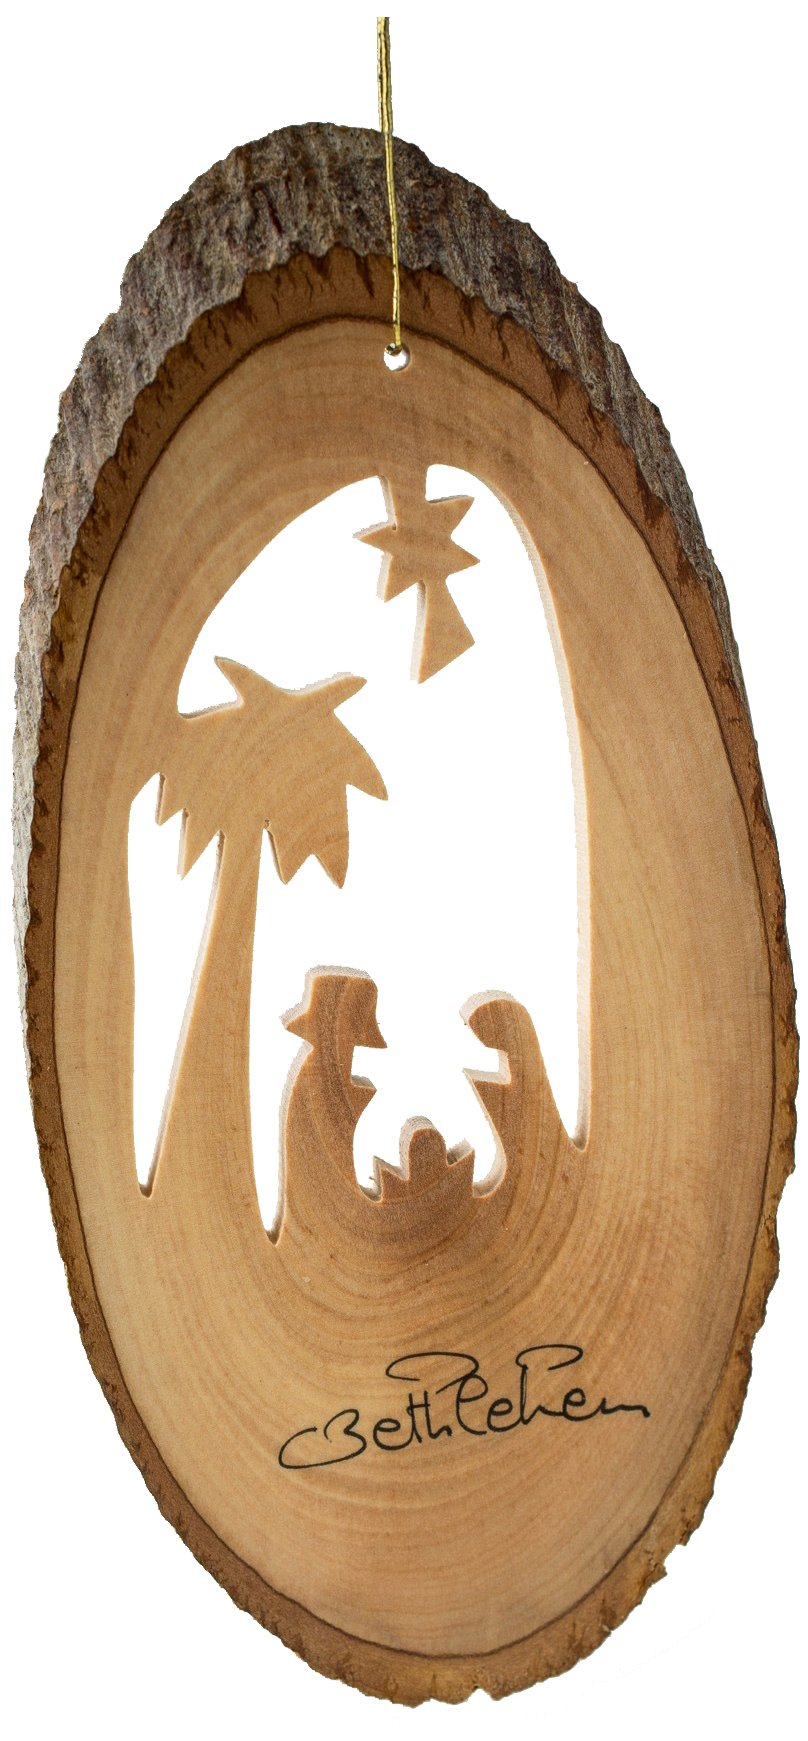 Earthwood Olive Wood Nativity with Palm Ornament